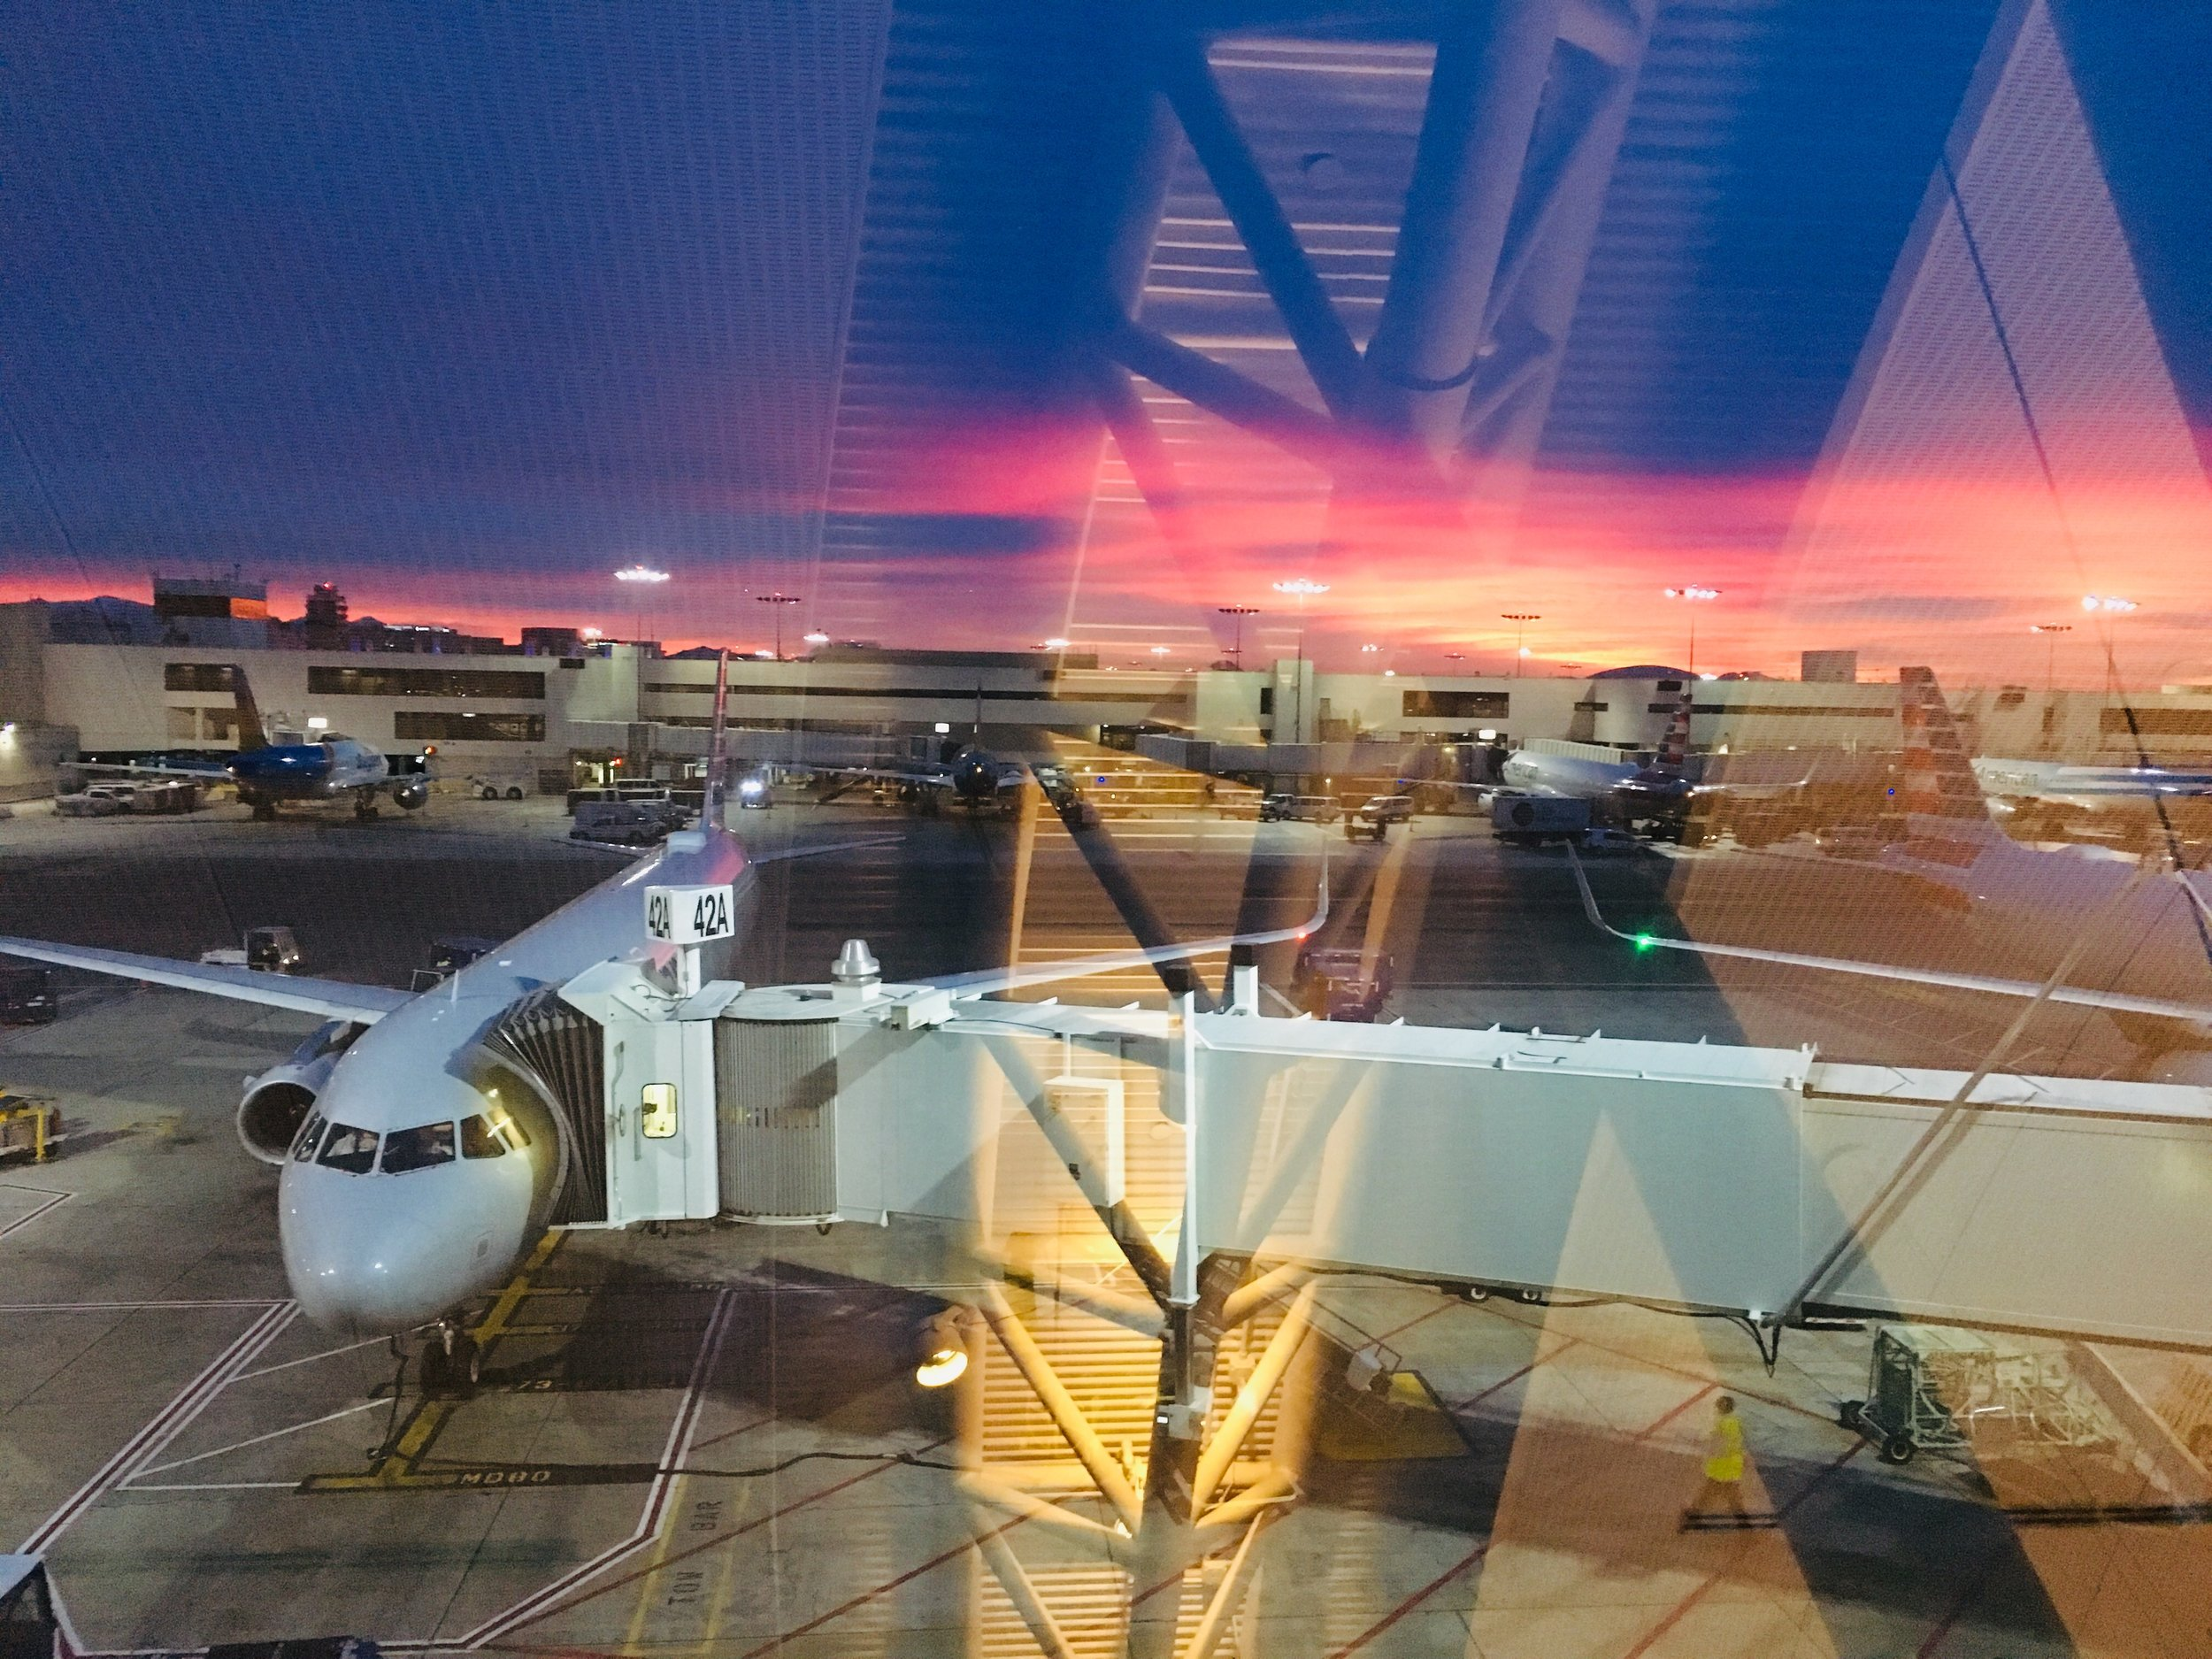 Sunrise at LAX. Even in the stress of travel I was amazed by the colors in the sky.